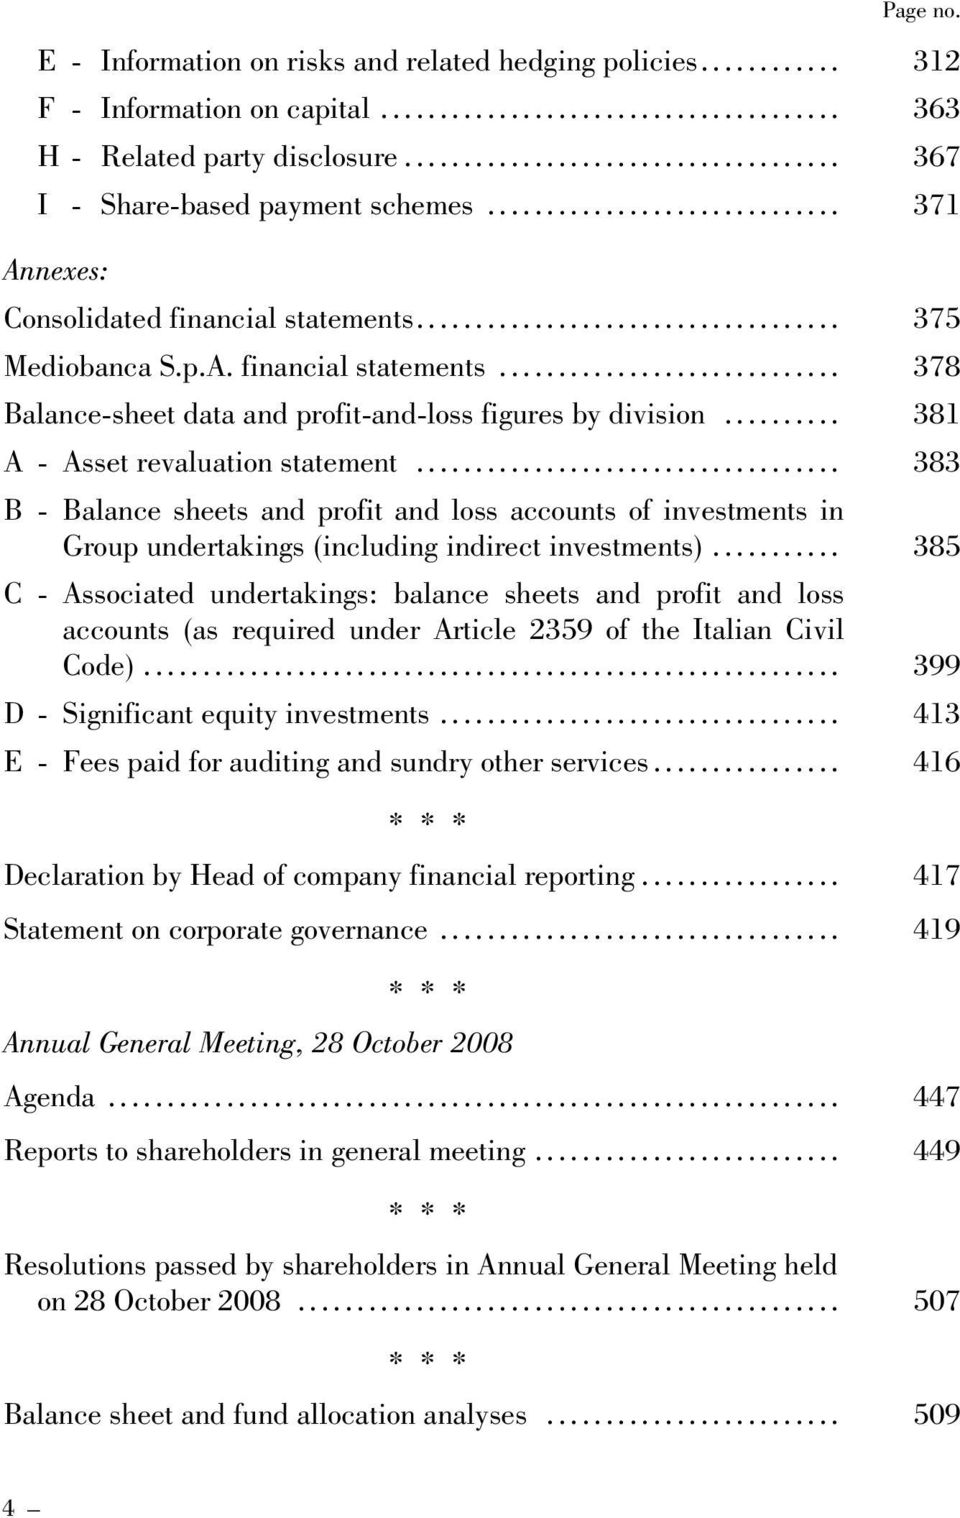 .. 383 B - Balance sheets and profit and loss accounts of investments in Group undertakings (including indirect investments).